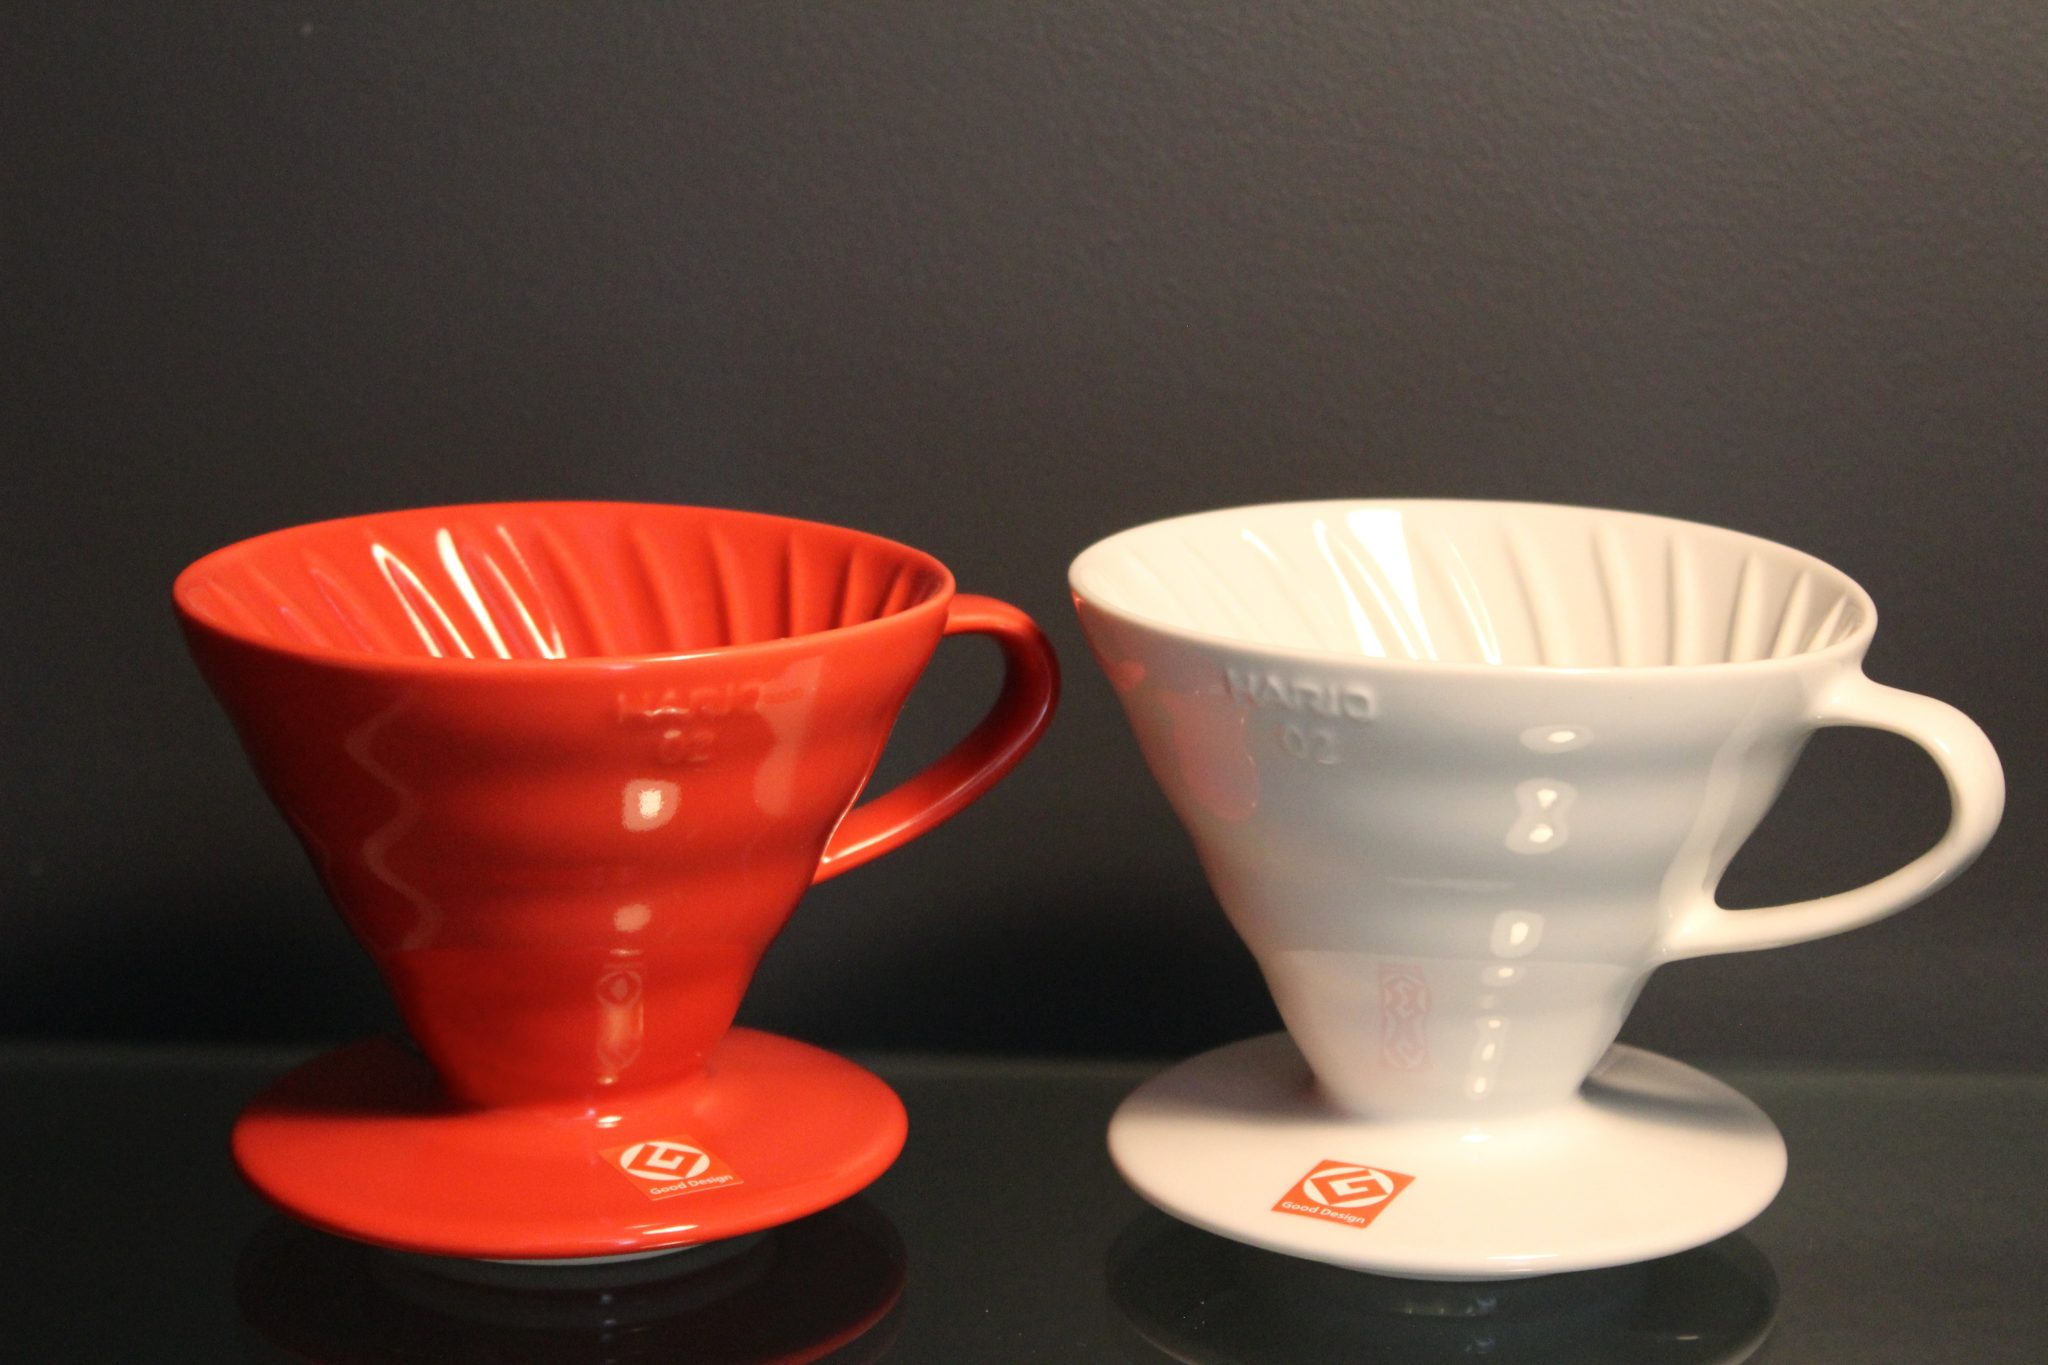 Hario V60 Ceramic Drippers, VD-02